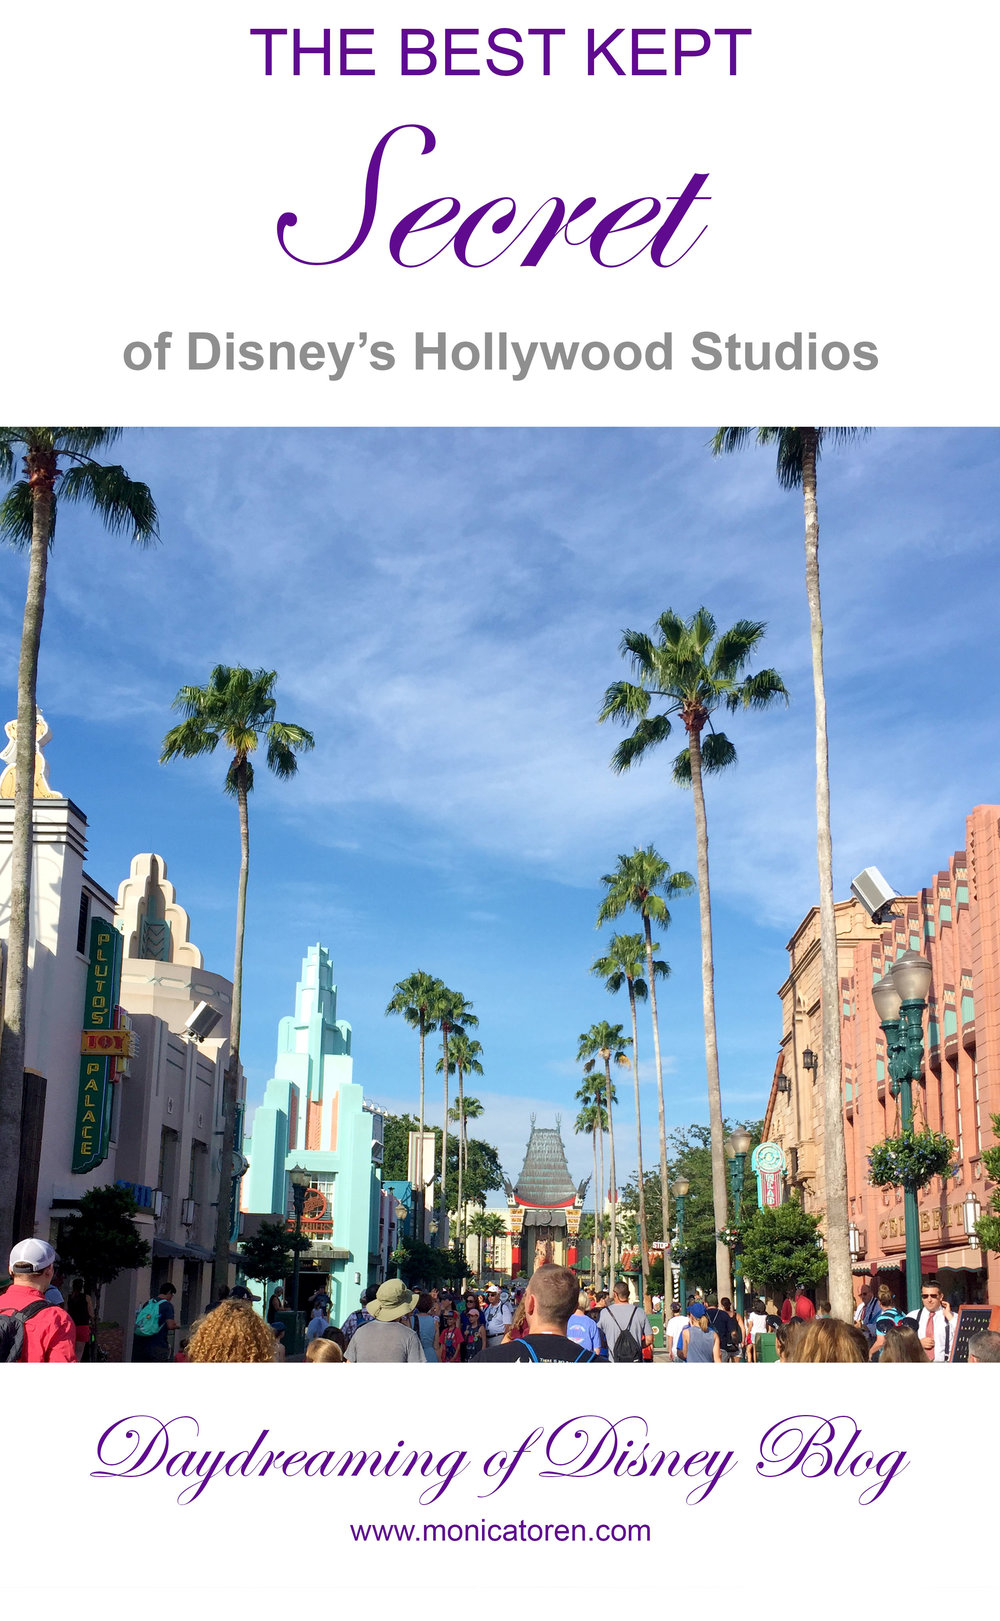 Daydreaming of Disney Blog - The Best Kept Secret of Disney's Hollywood Studios - http://www.monicatoren.com